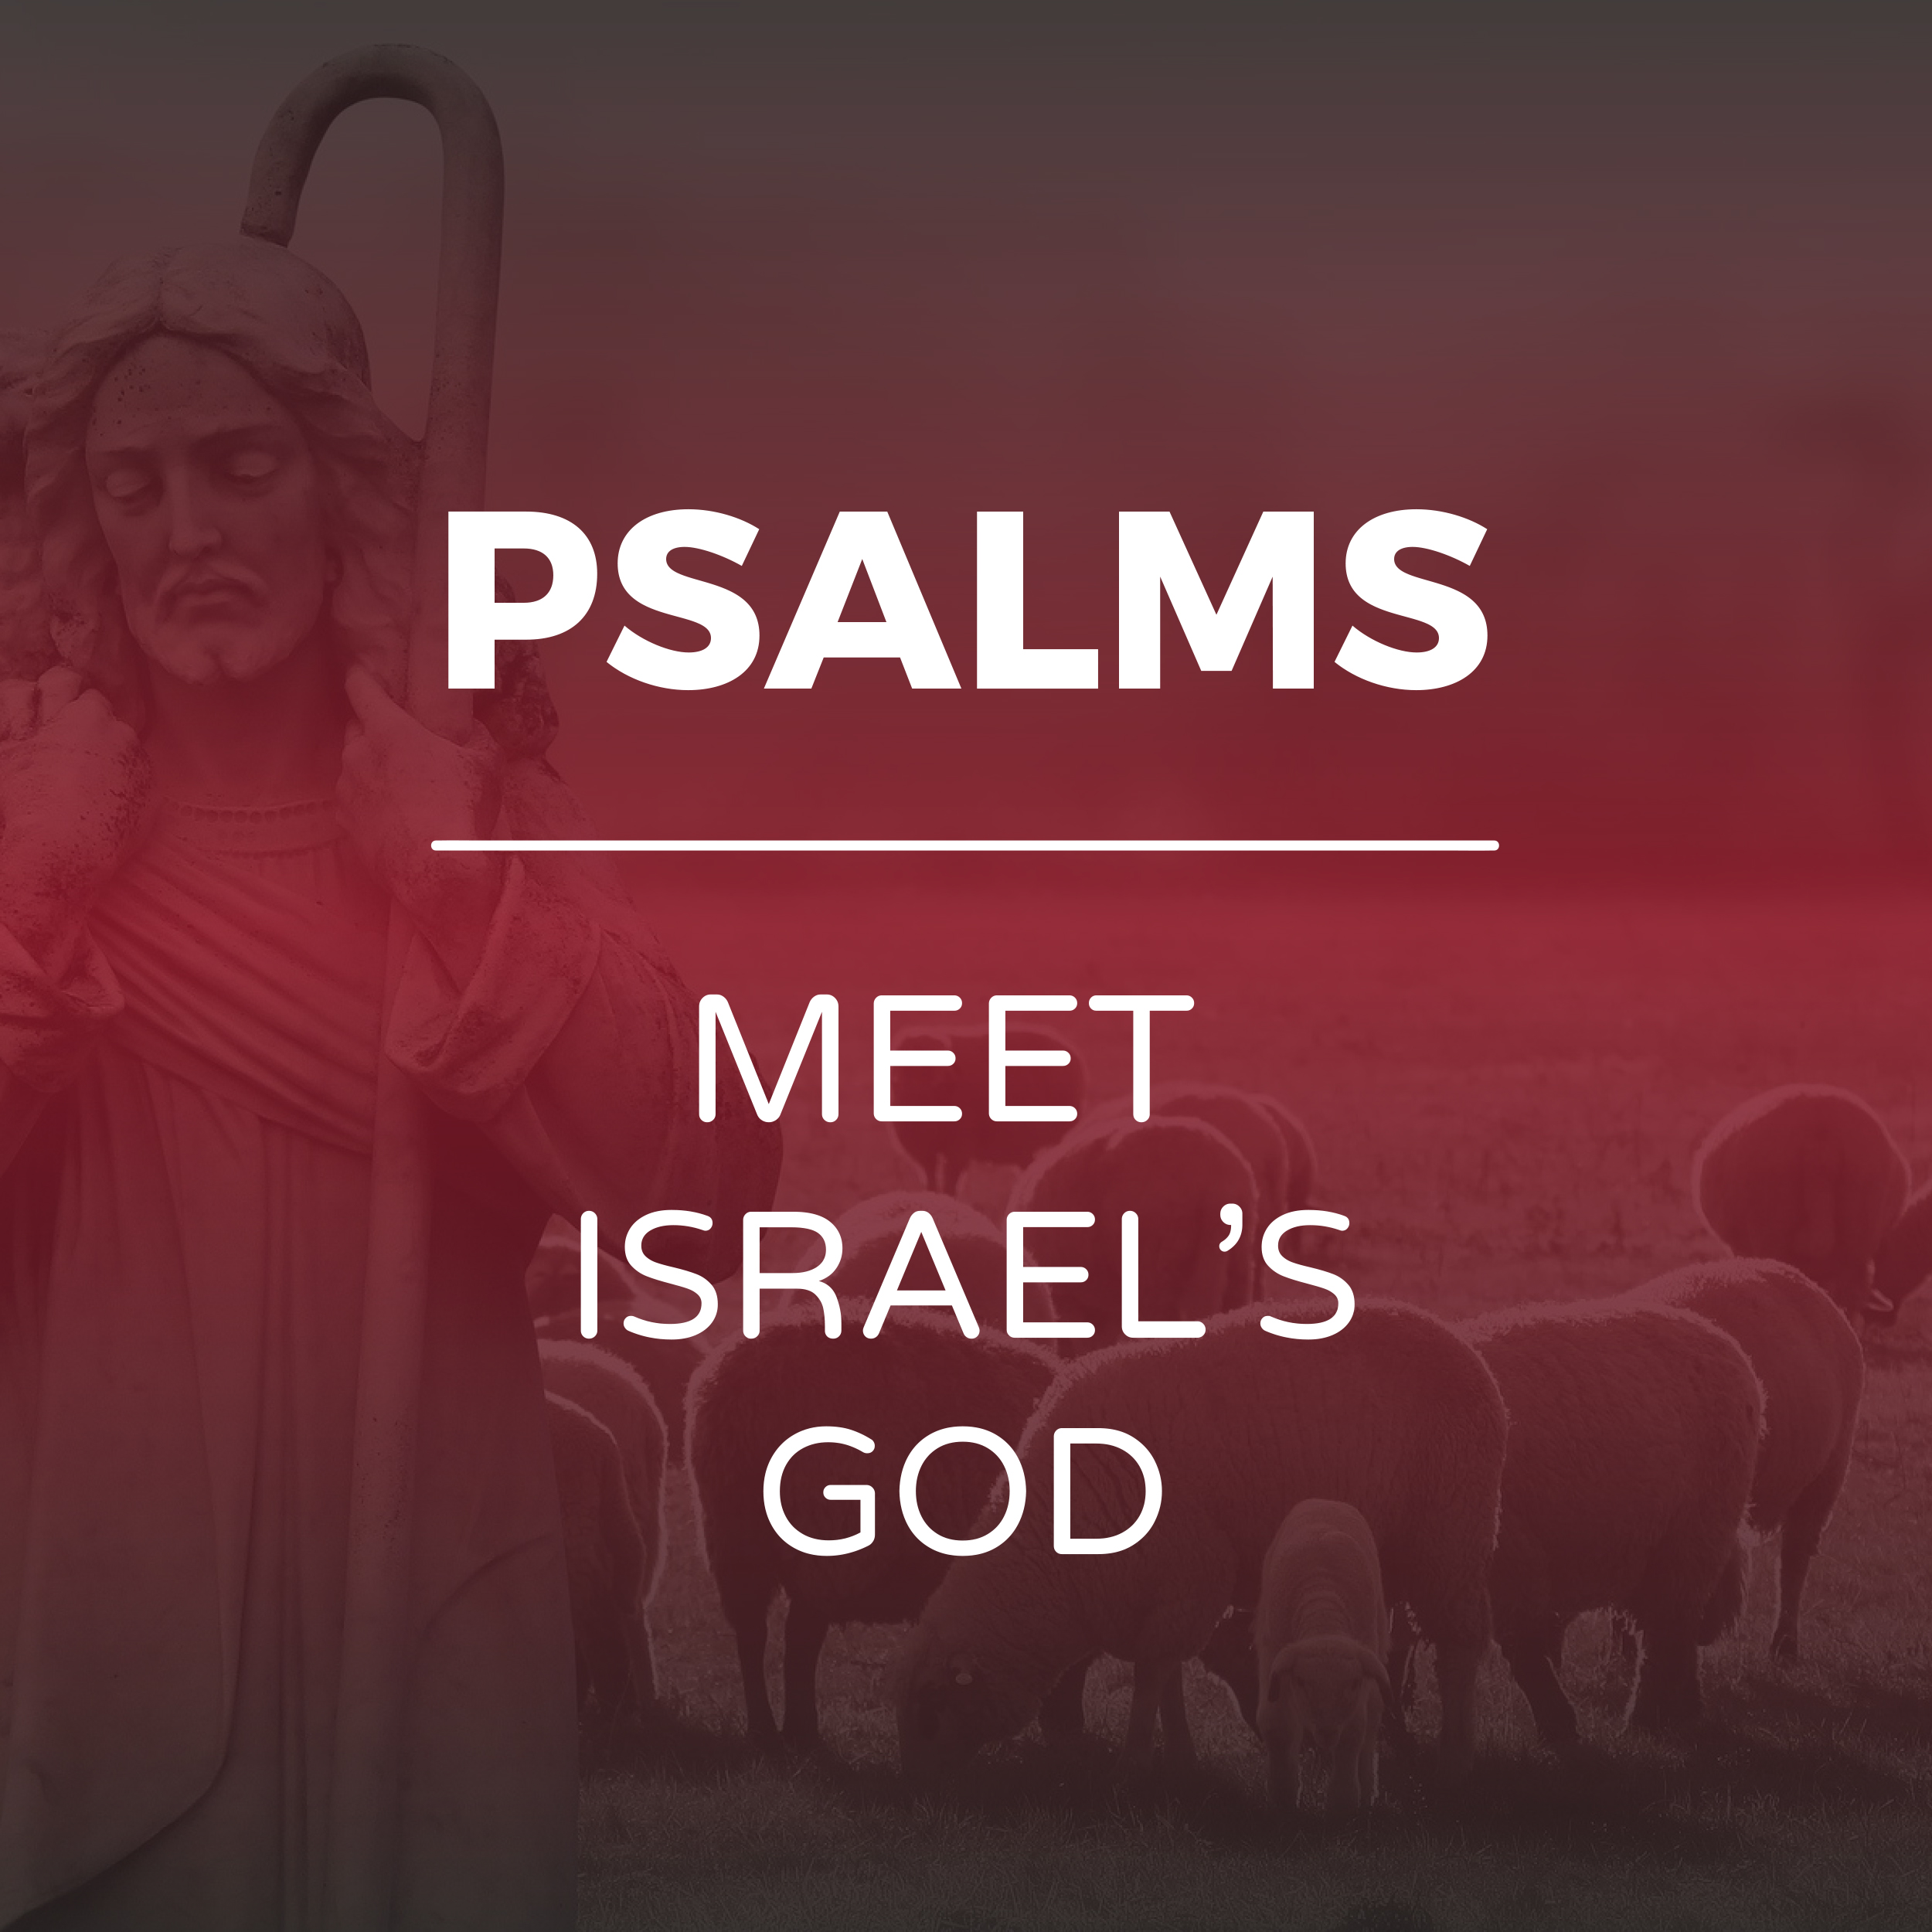 Psalms - Meet Israel's God sermon series - Hope Church Huddersfield